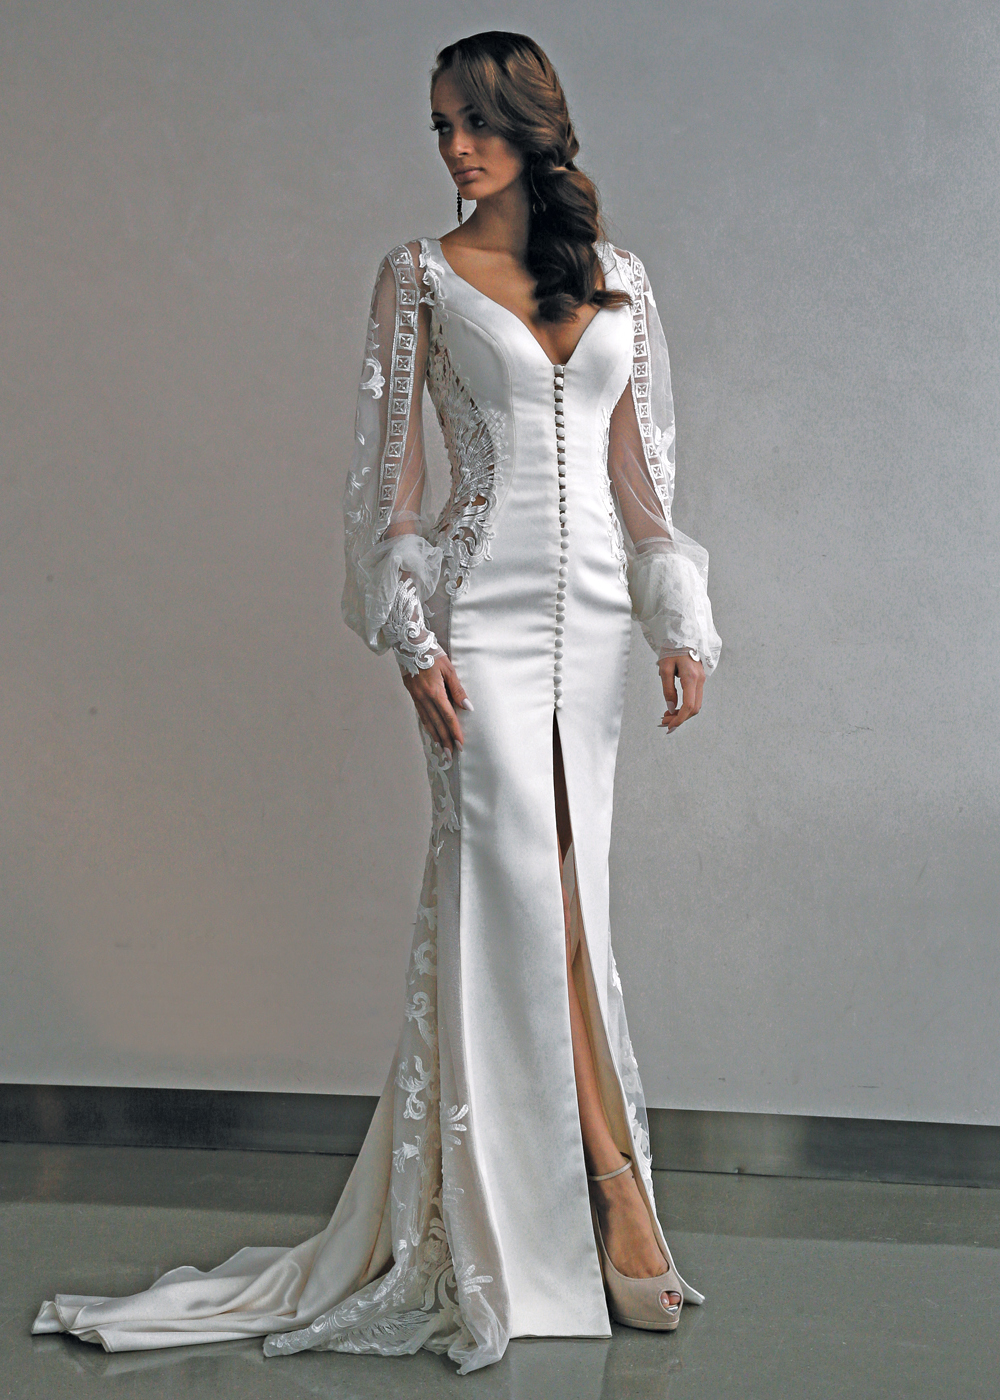 Galia Lahav Avant Garde Long Sleeve Sheath Wedding Gown